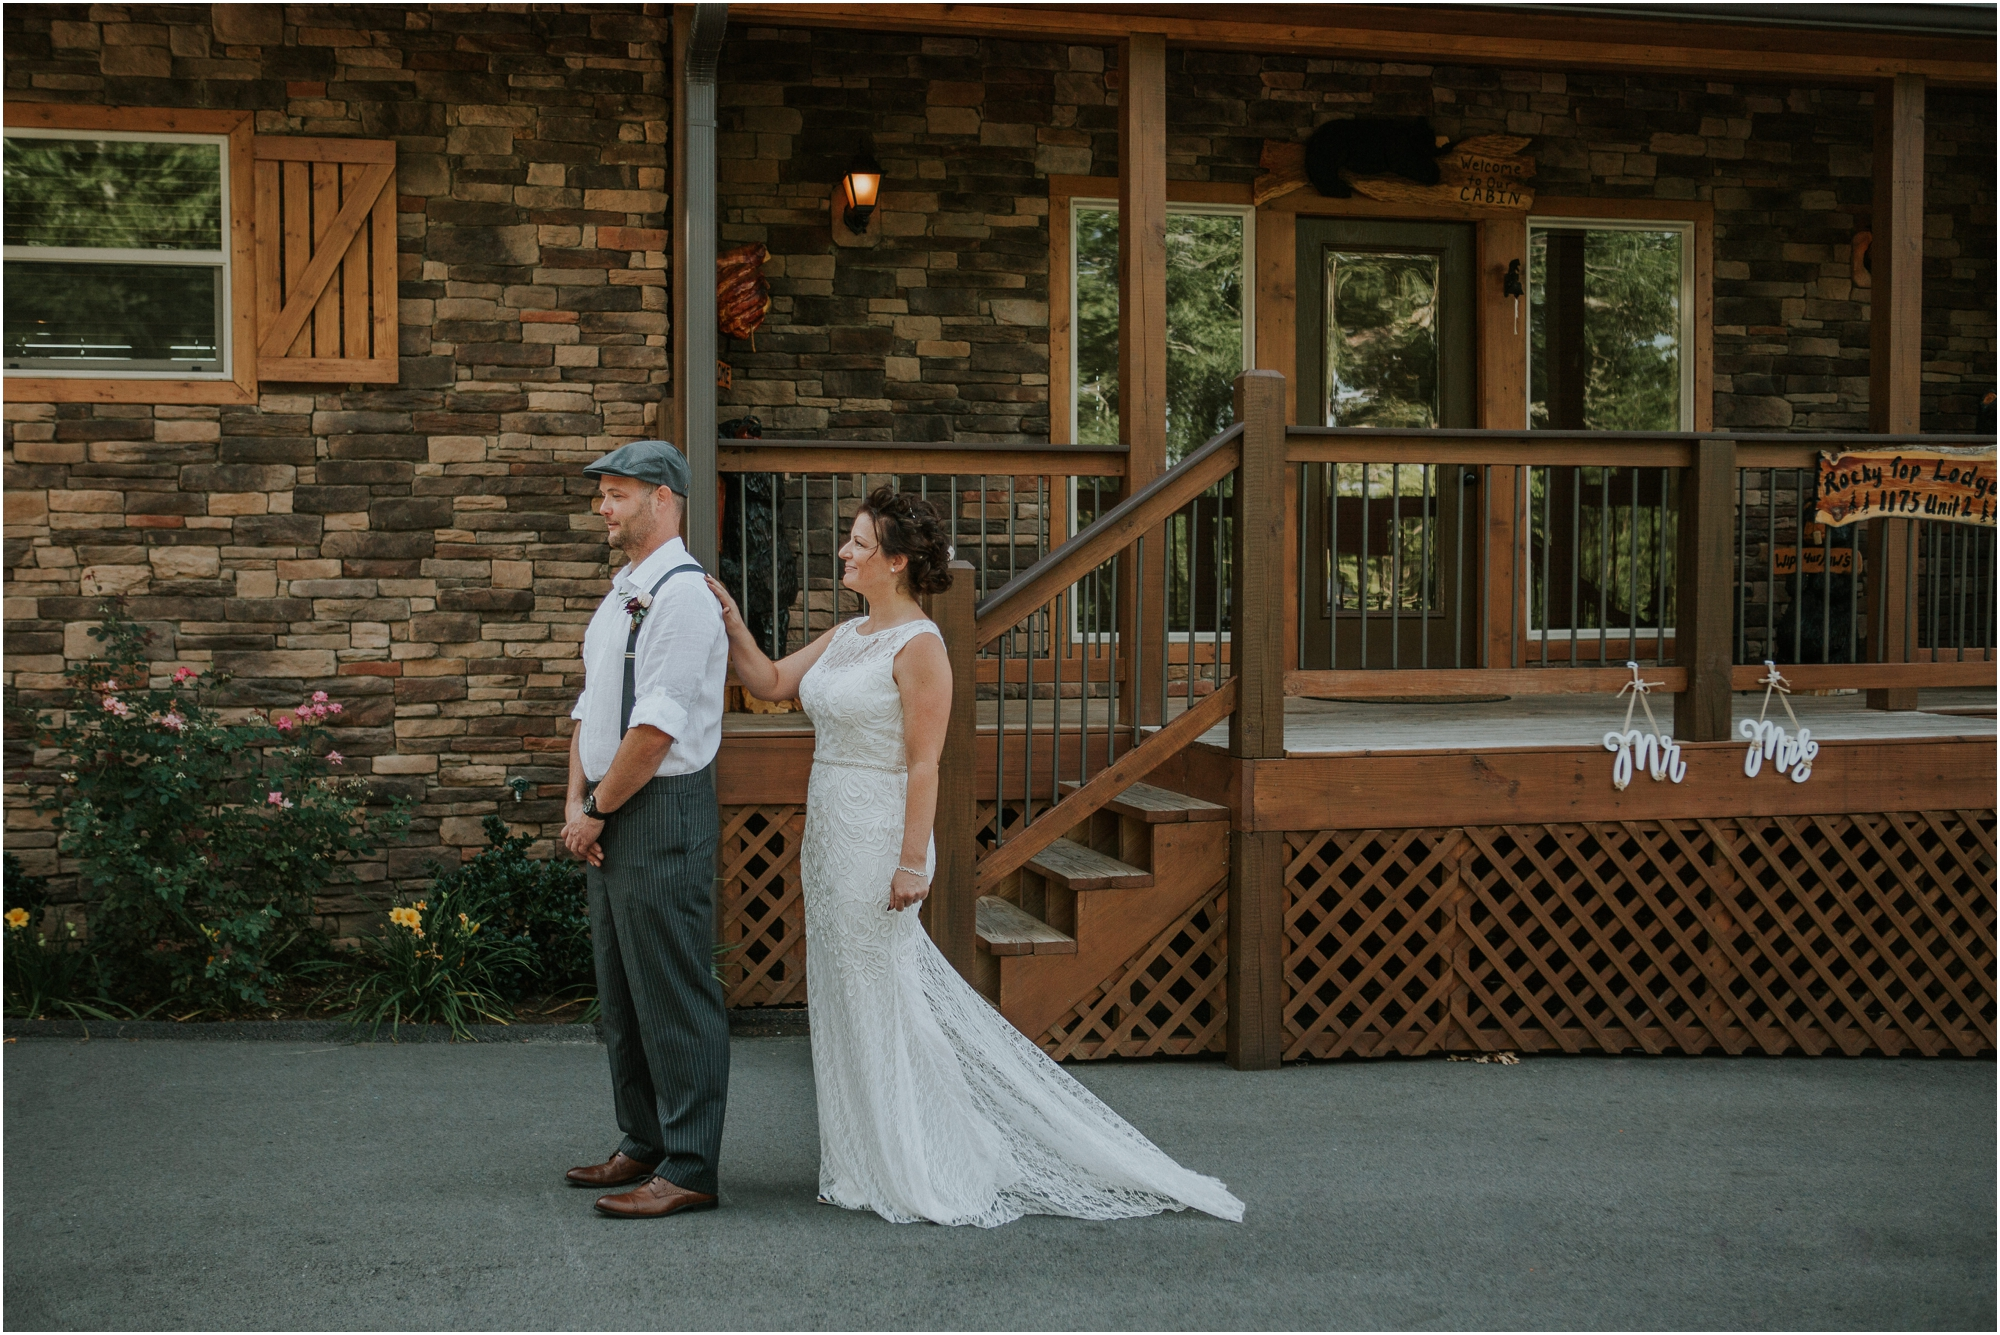 first-looks-wedding-planning-tips-timeline-groom-bride-katy-sergent-photography-northeast-tennessee-adventurous-wedding-elopement_0009.jpg